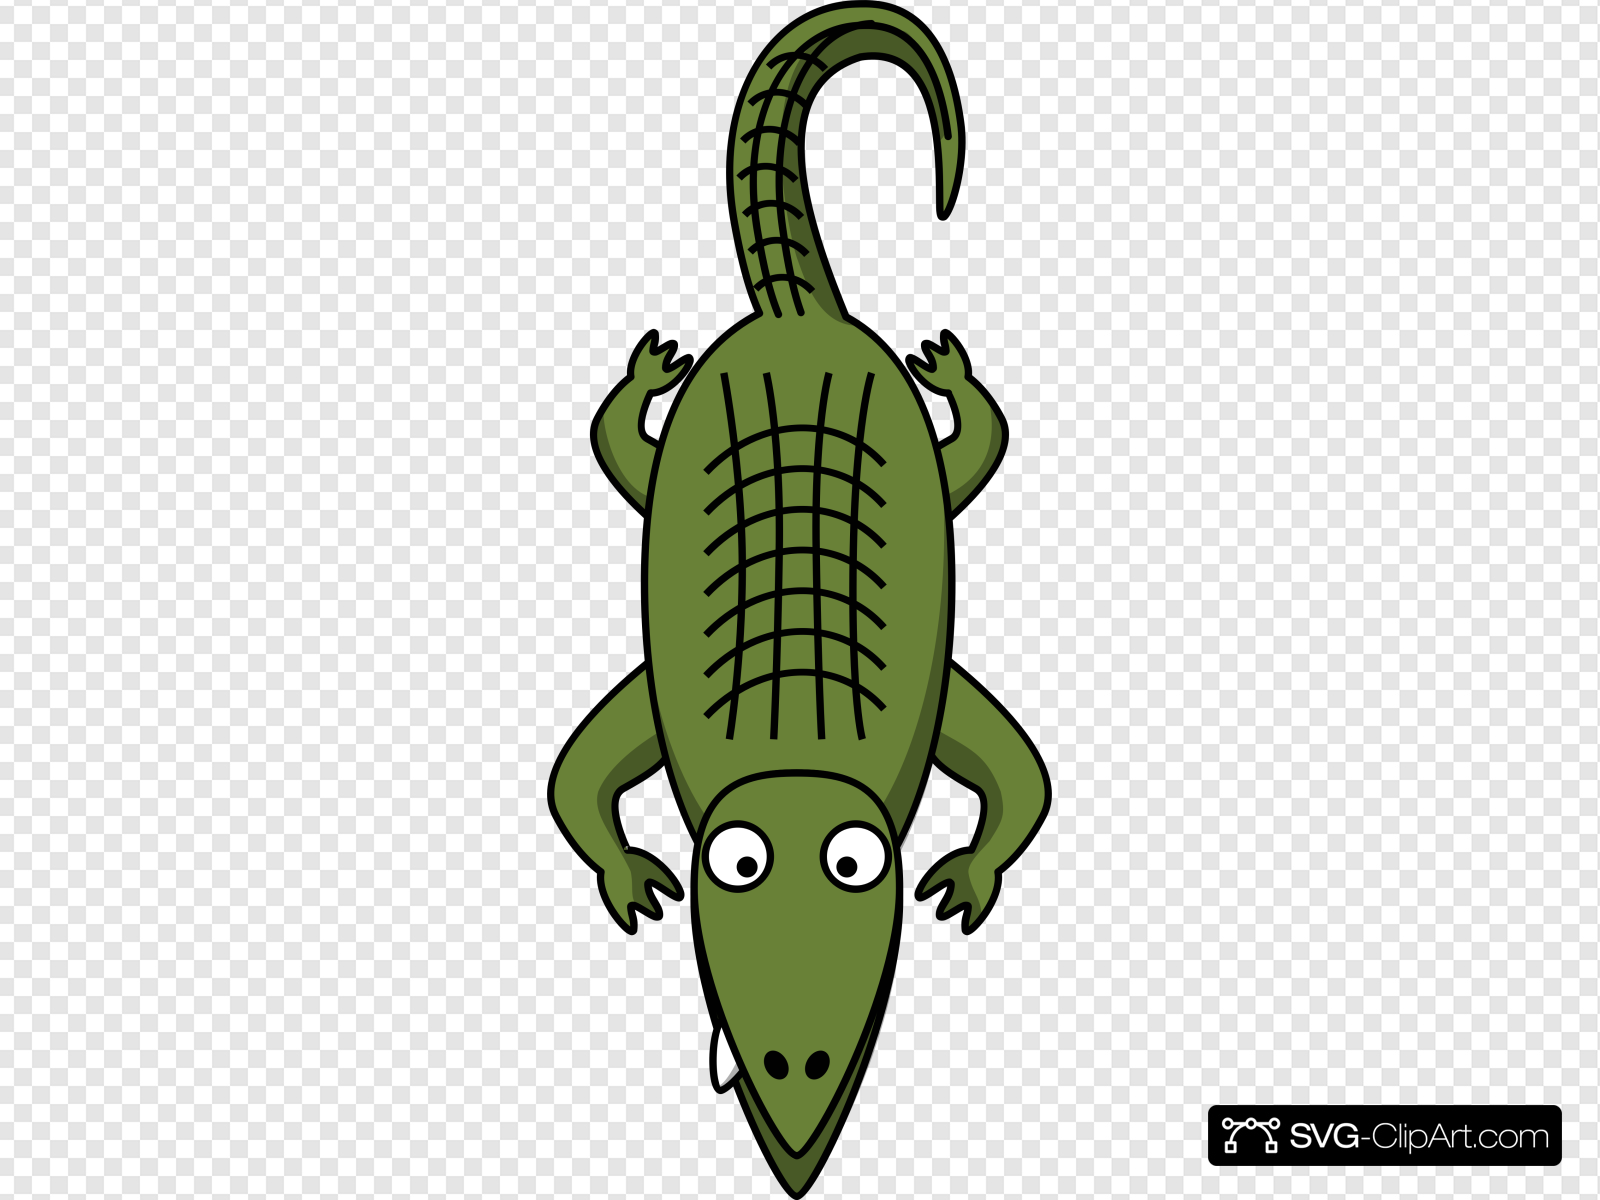 Simple cartoon clipart picture transparent library Simple Cartoon Alligator Clip art, Icon and SVG - SVG Clipart picture transparent library